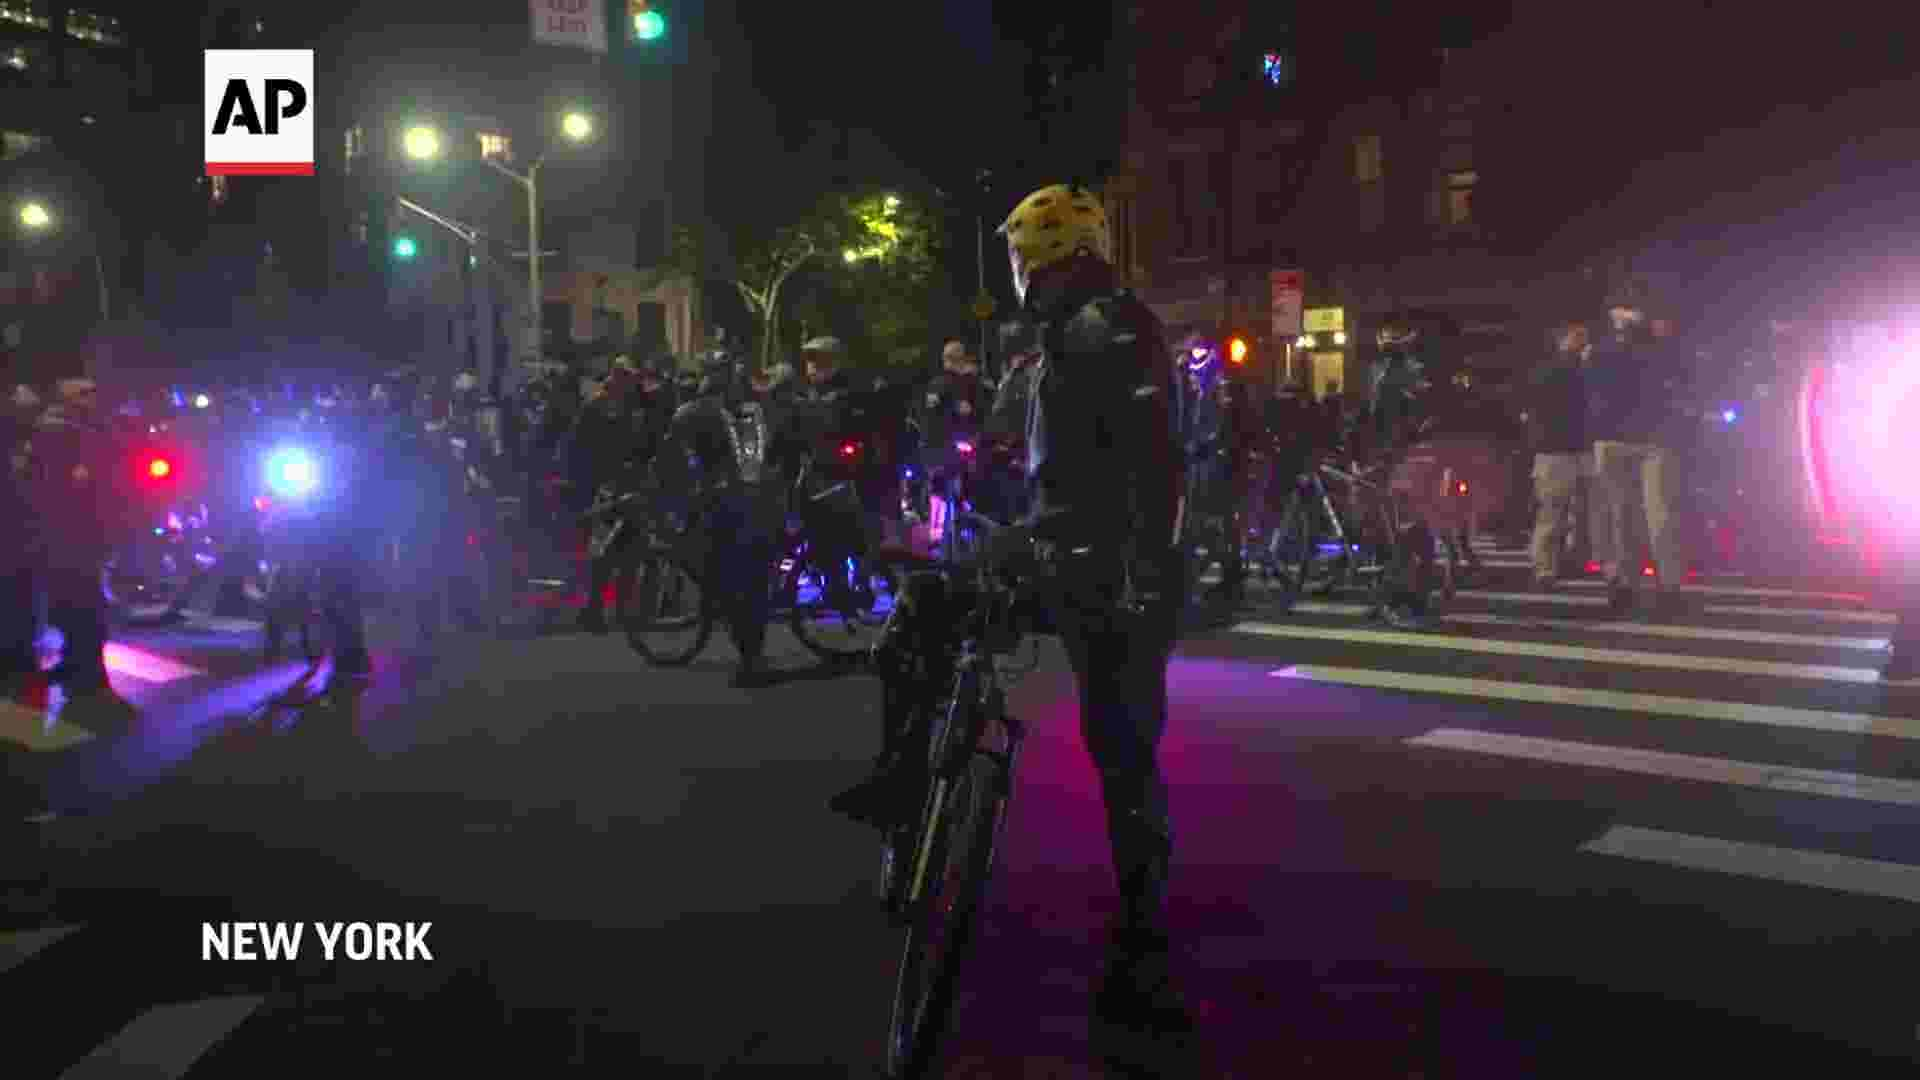 Arrests after protesters set fires in NYC 1